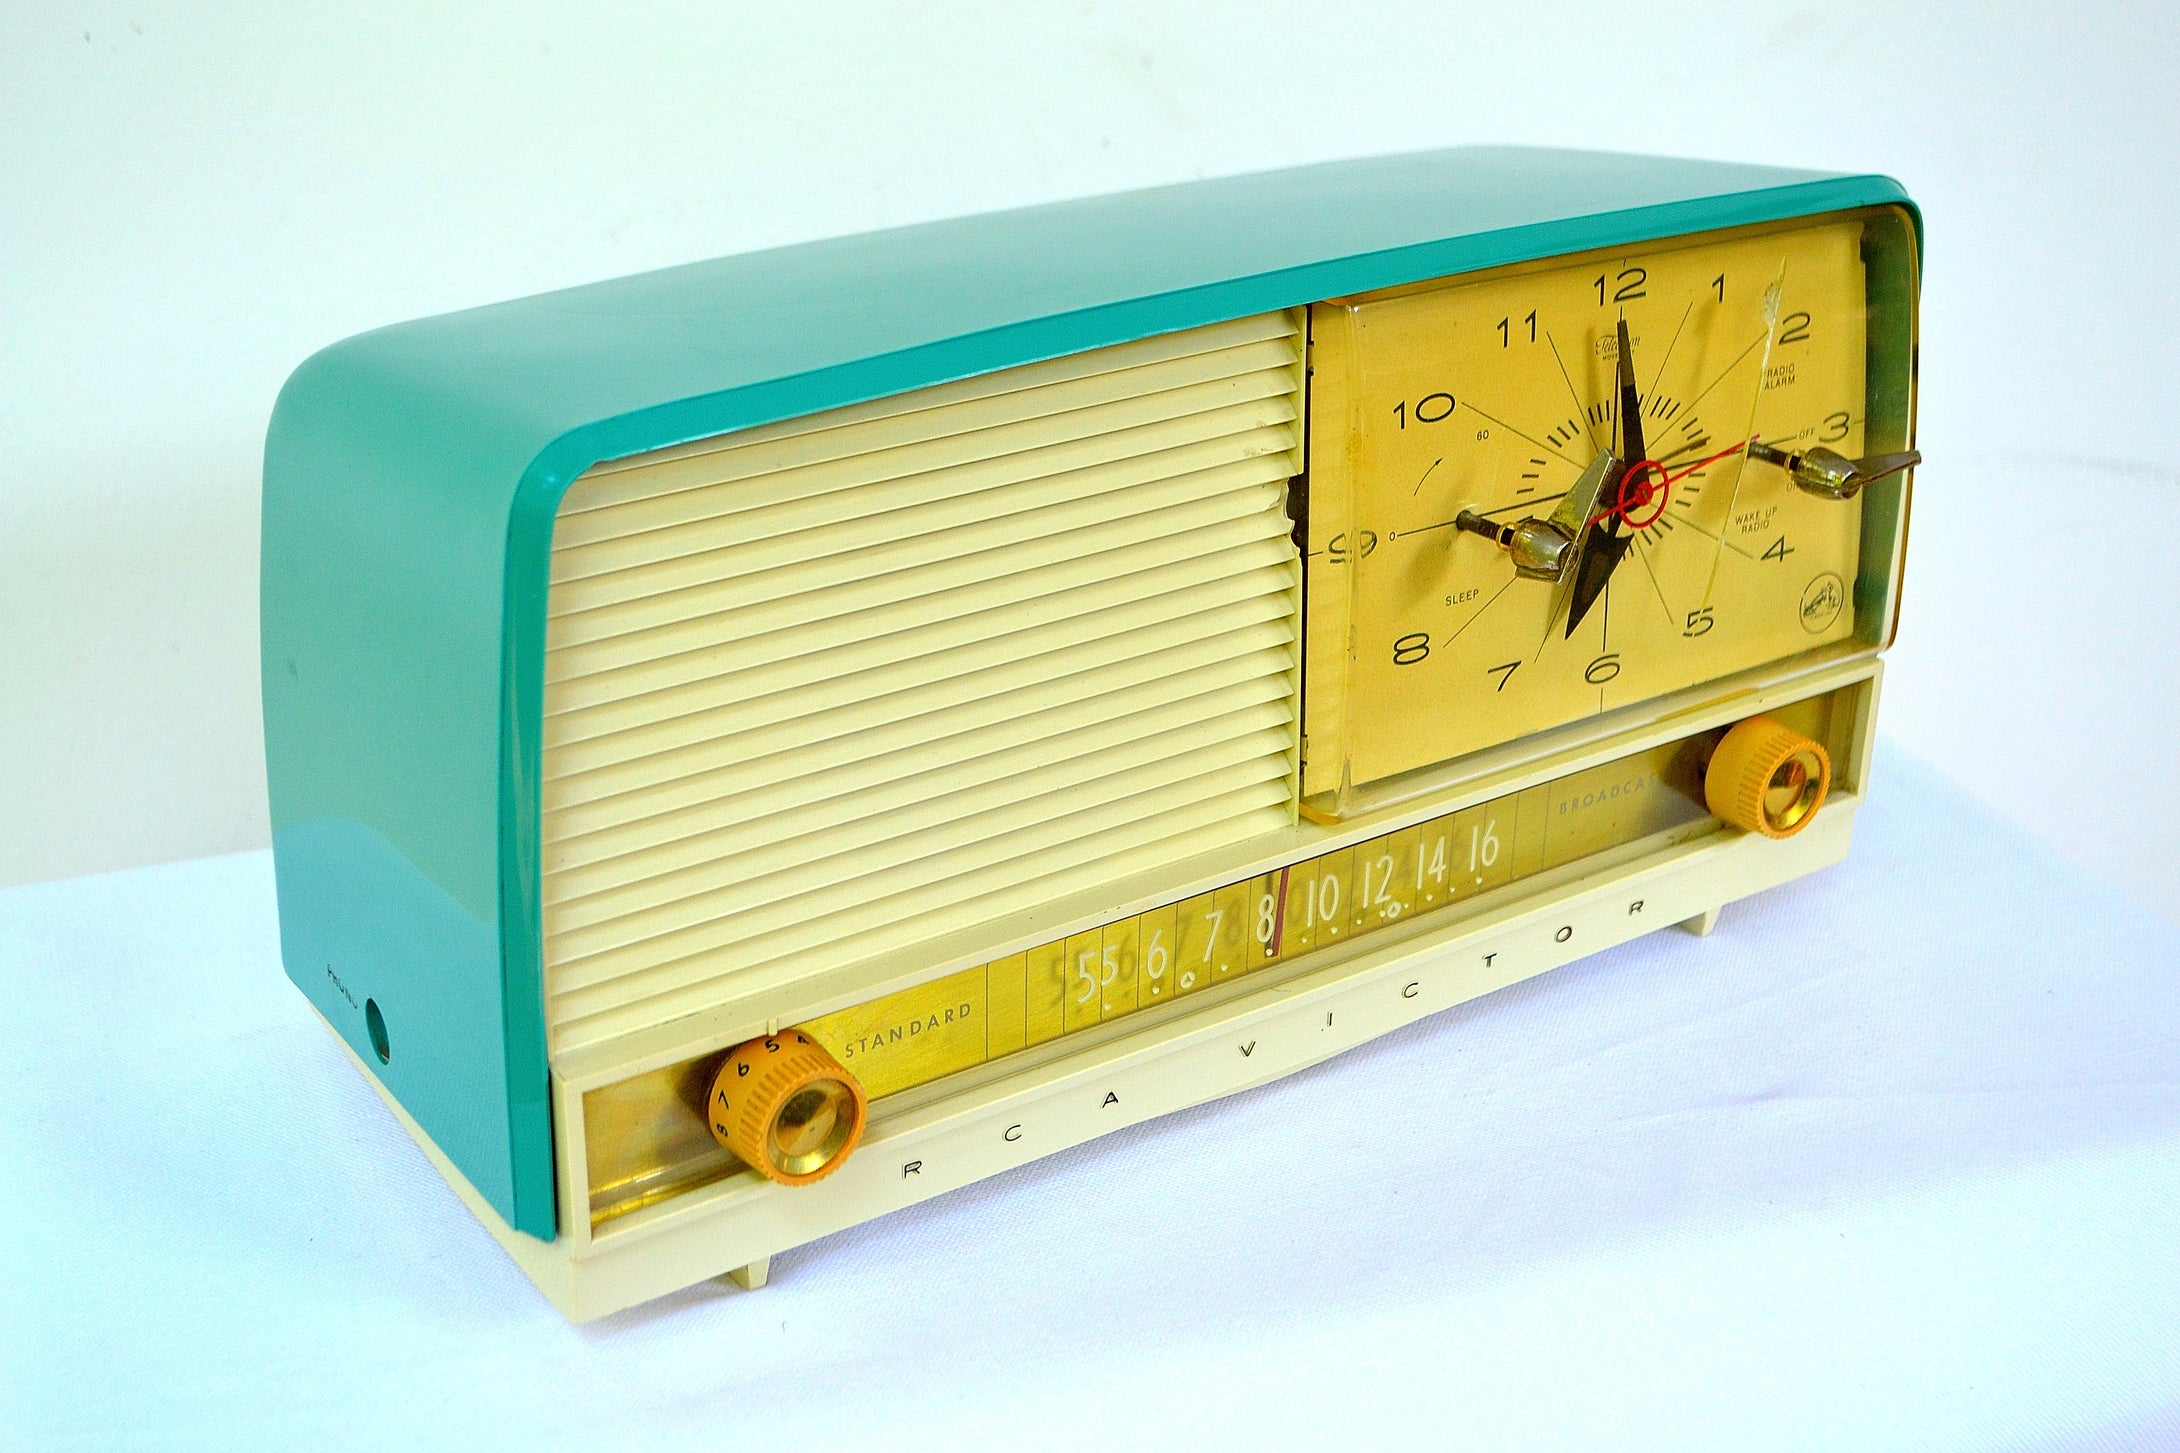 SOLD! - Sept 7, 2018 - Gorgeous Teal And White 1956 RCA Victor 9-C-71 Tube AM Clock Radio Works Great! - [product_type} - RCA Victor - Retro Radio Farm